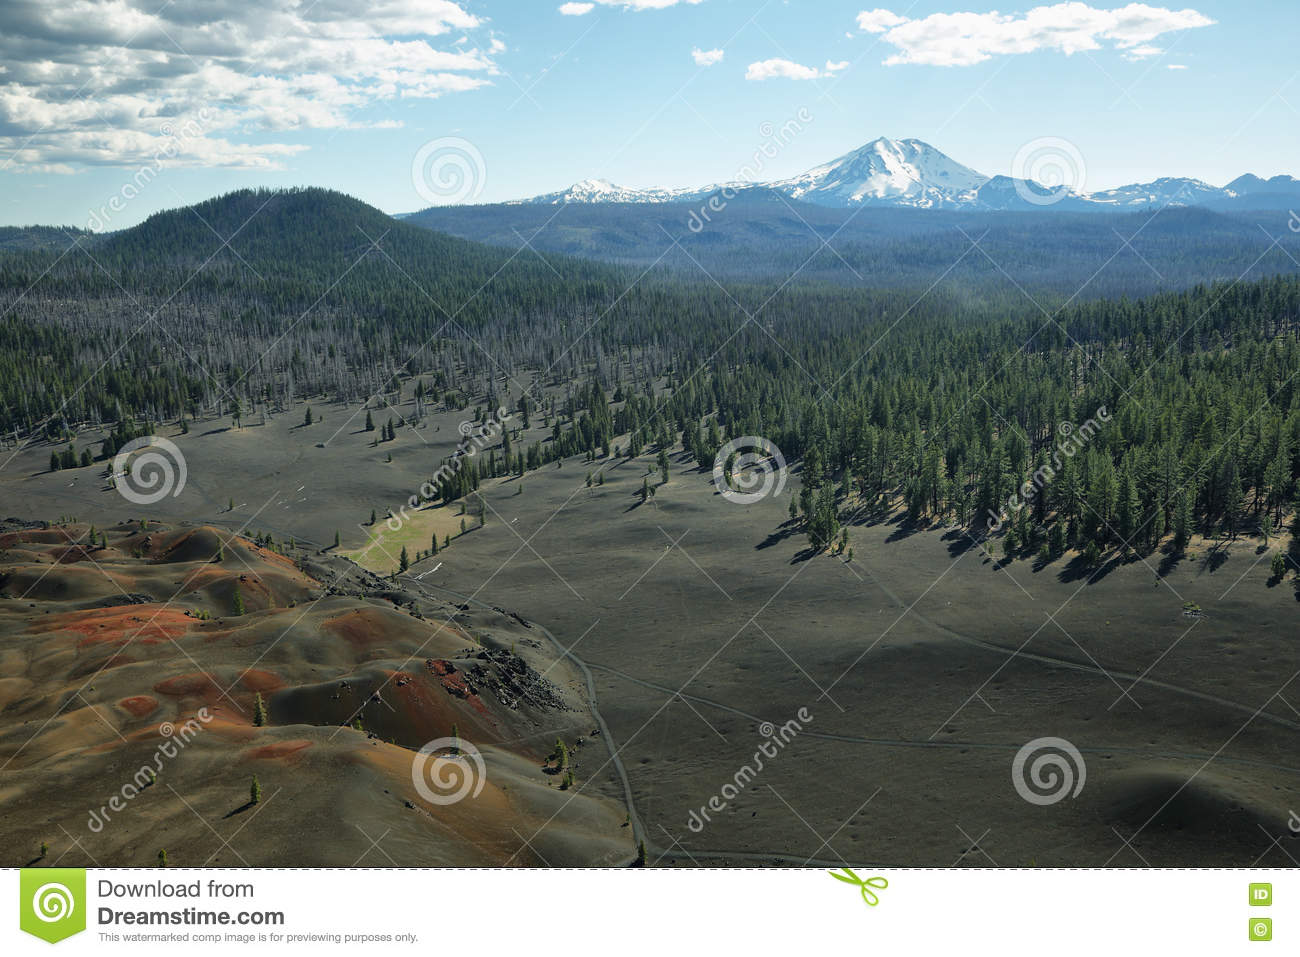 Crête de Lassen, parc national volcanique de Lassen, la Californie